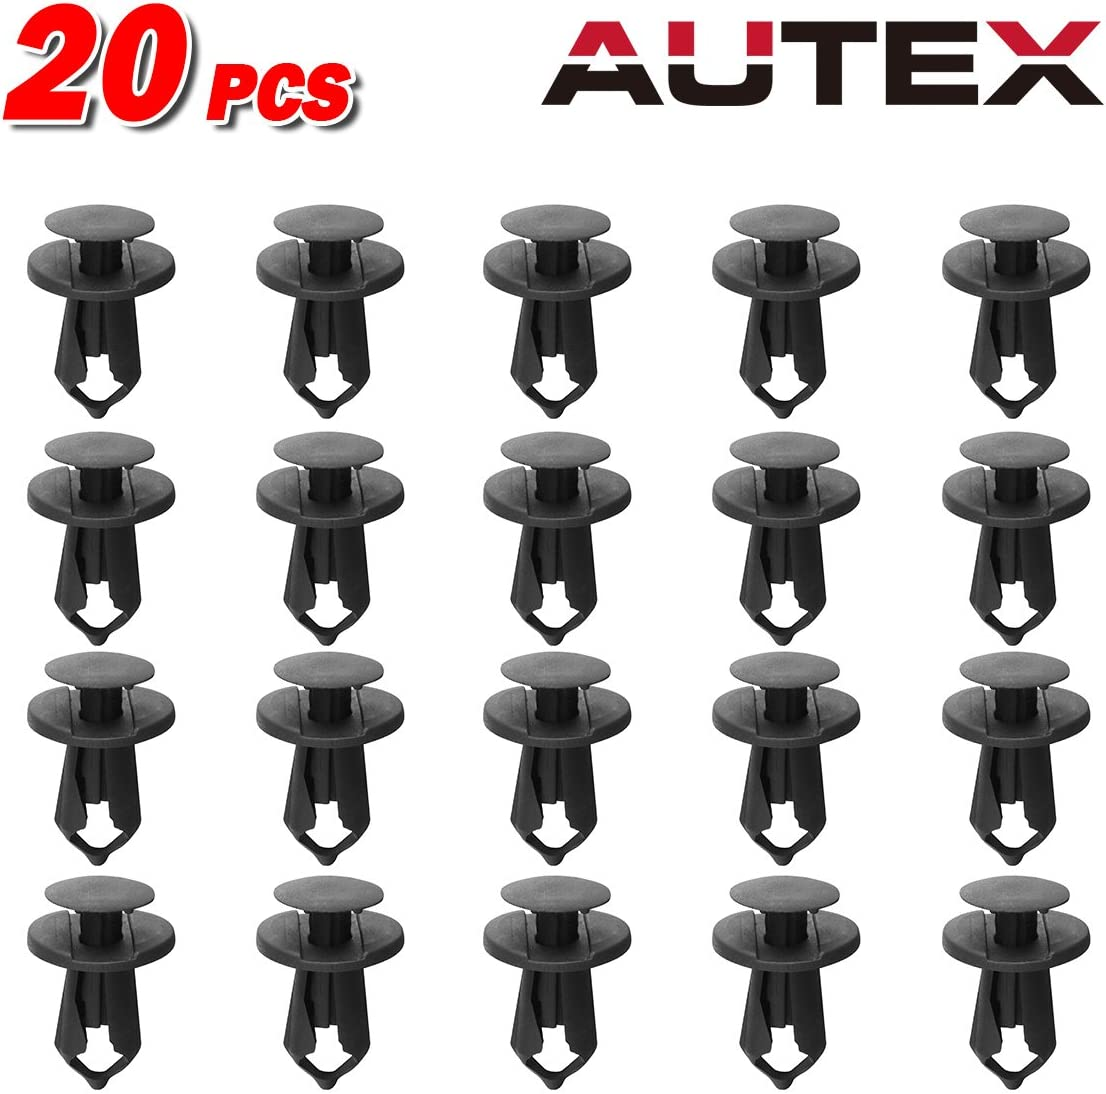 20pcs 8mm Fender Rivet Fastener Clips Push Type Retainer For Ford